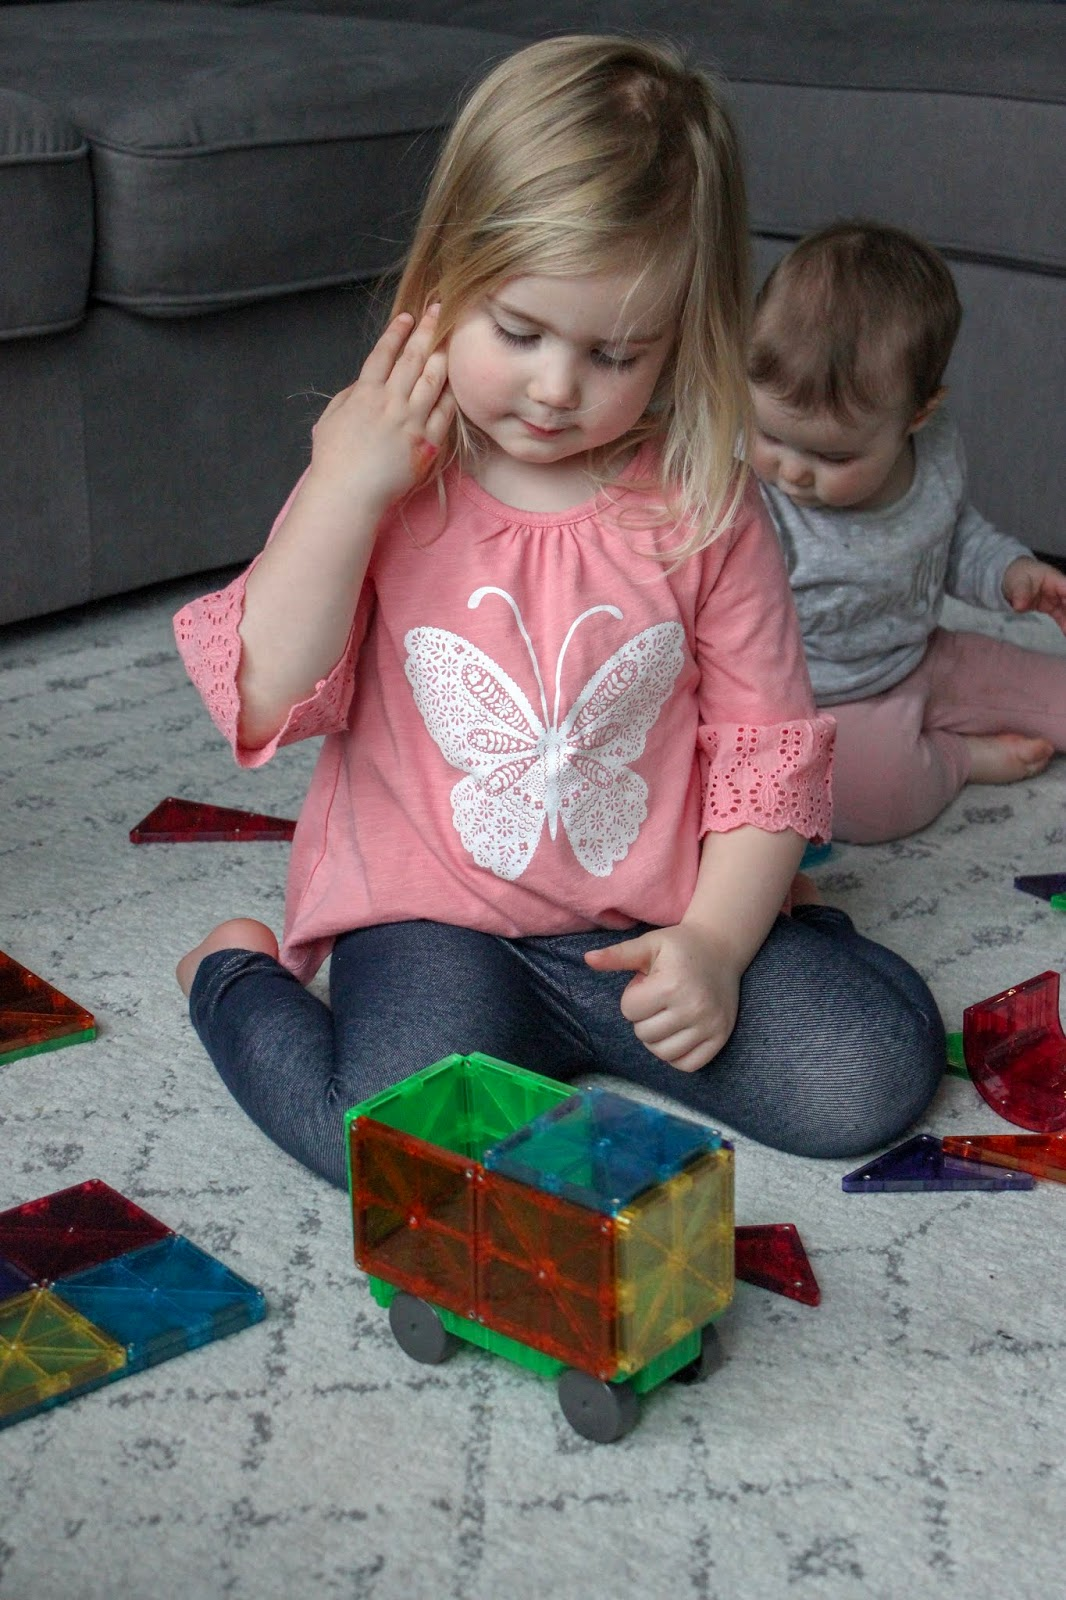 preschooler playing with magnetic tiles